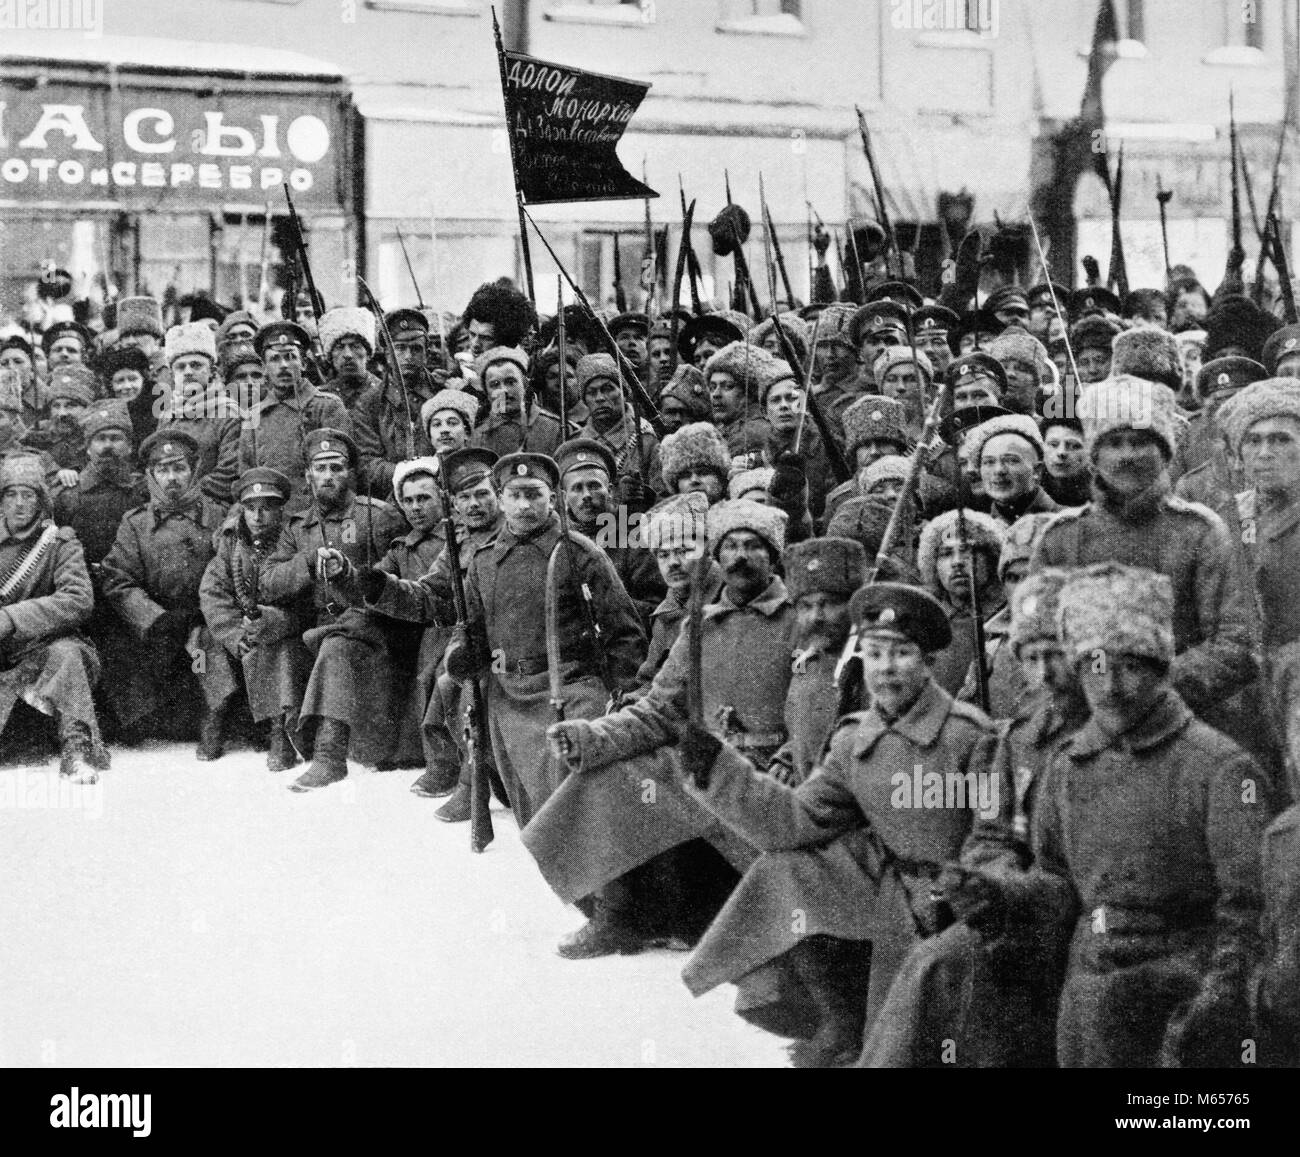 1900s 1917 SIBERIAN RIFLES AND COSSACKS TROOPS WITH SIGNS DOWN WITH MONARCHY ON WAY TO DUMA IN PETROGRAD ST. PETERSBURG - Stock Image